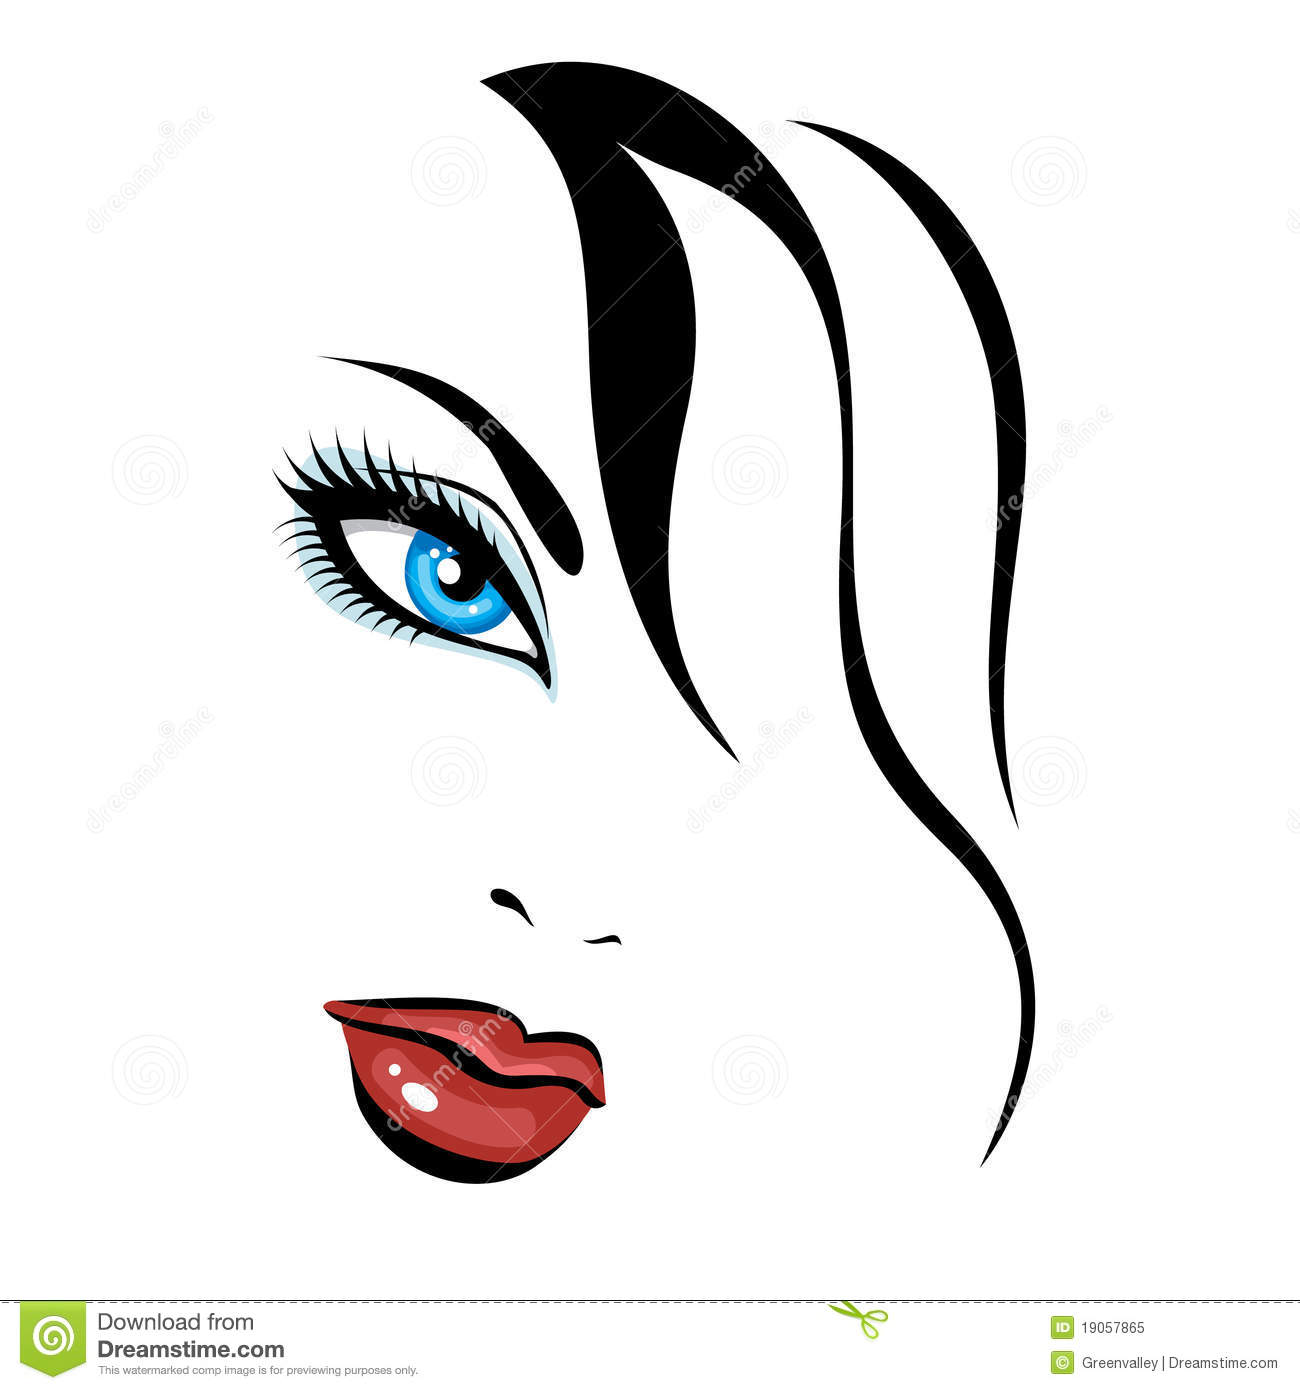 Beauty clipart #10, Download drawings